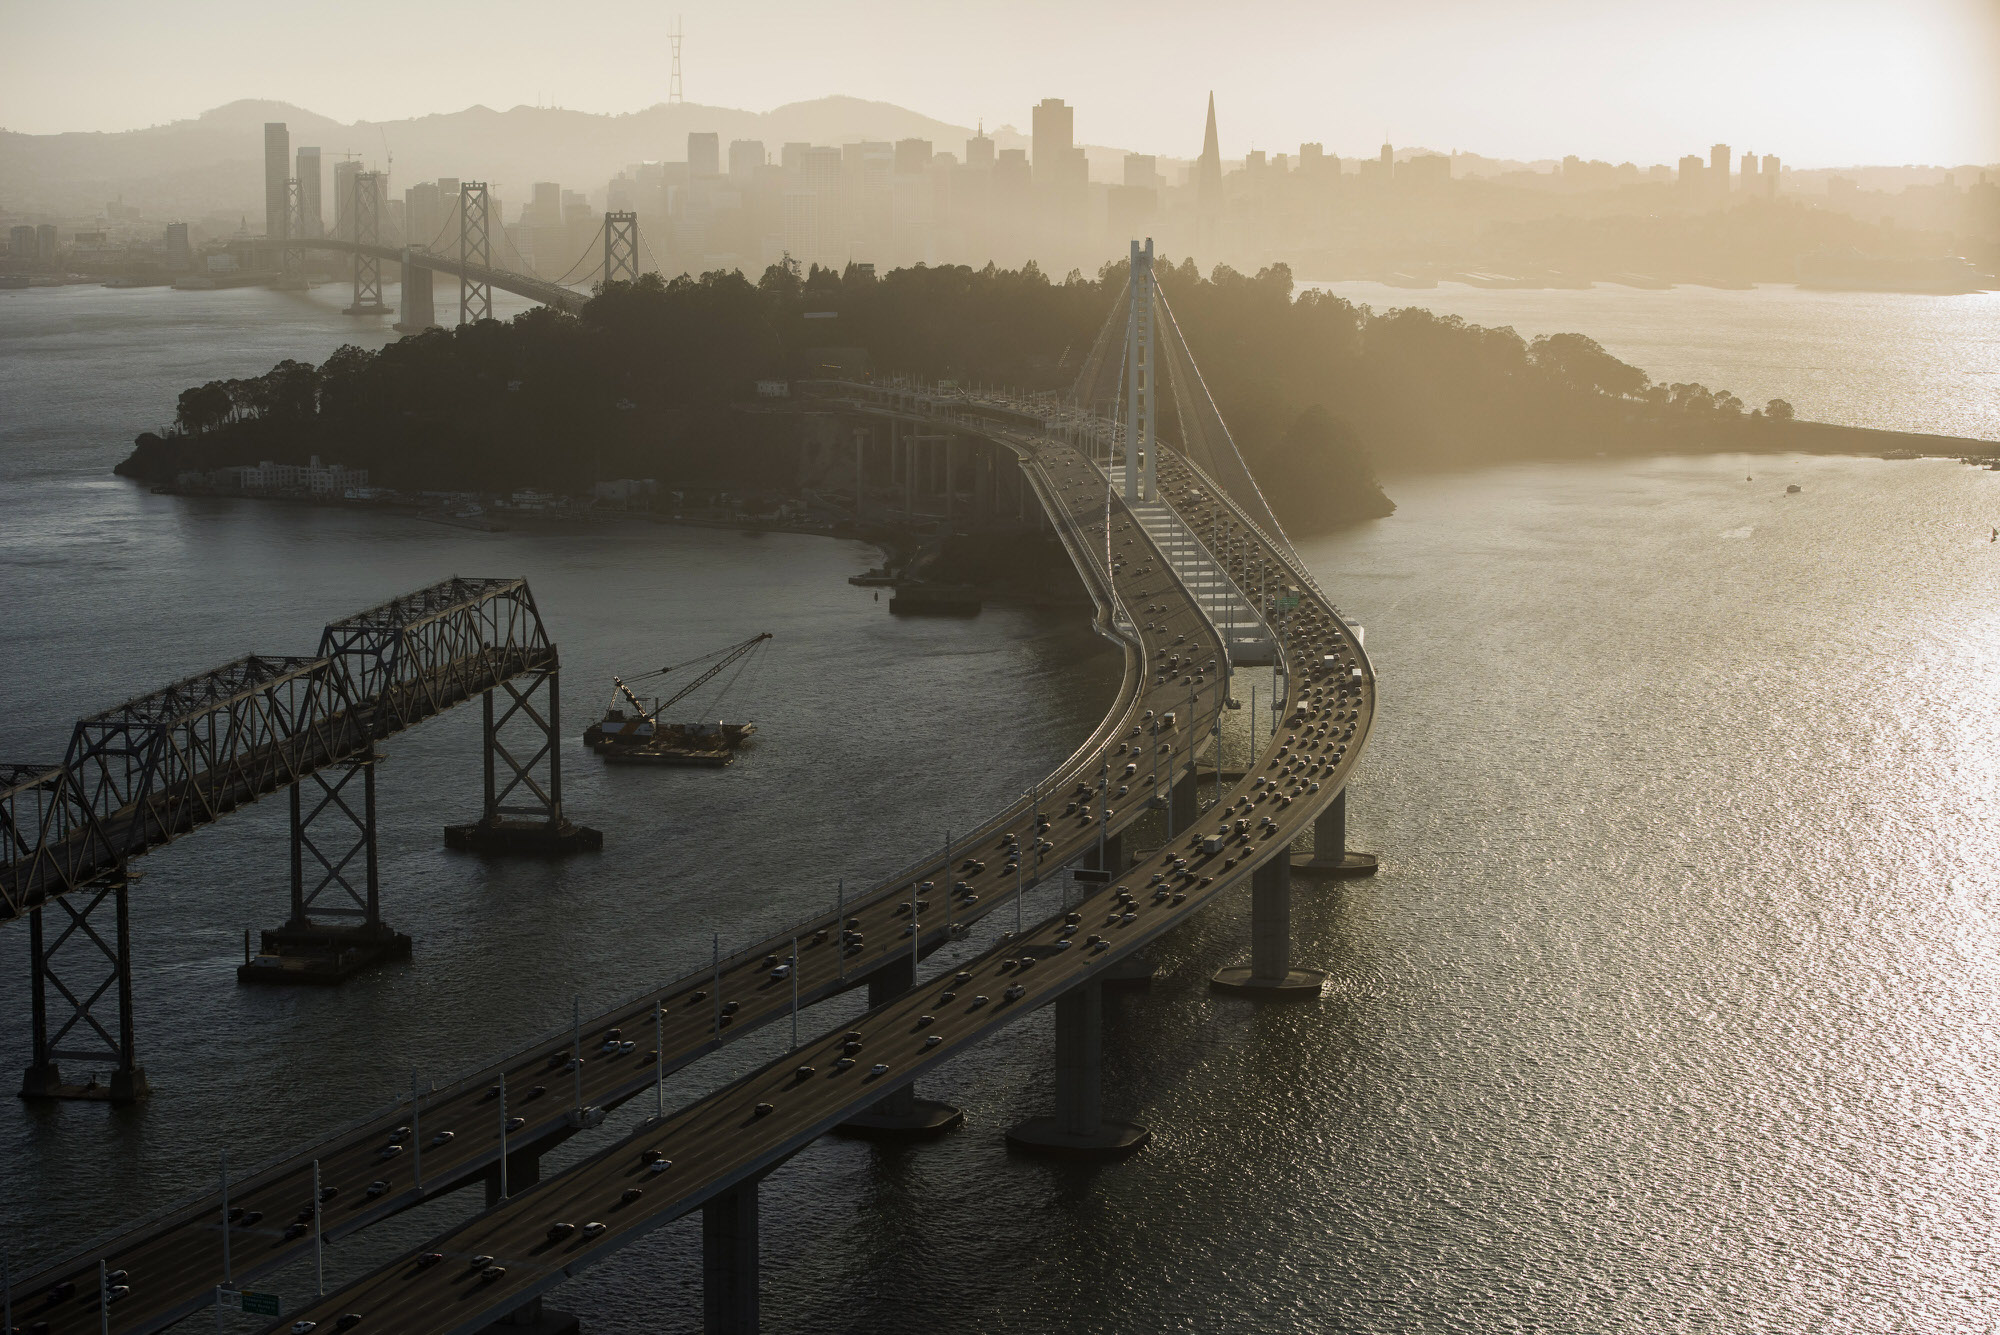 Cars travel over the San Francisco-Oakland Bay Bridge towards Treasure Island in this aerial photograph taken above San Francisco, California, U.S., on Monday, Oct. 5, 2015. With tech workers flooding San Francisco, one-bedroom apartment rents have climbed to $3,500 a month, more than in any other U.S. city. Photographer: David Paul Morris/Bloomberg